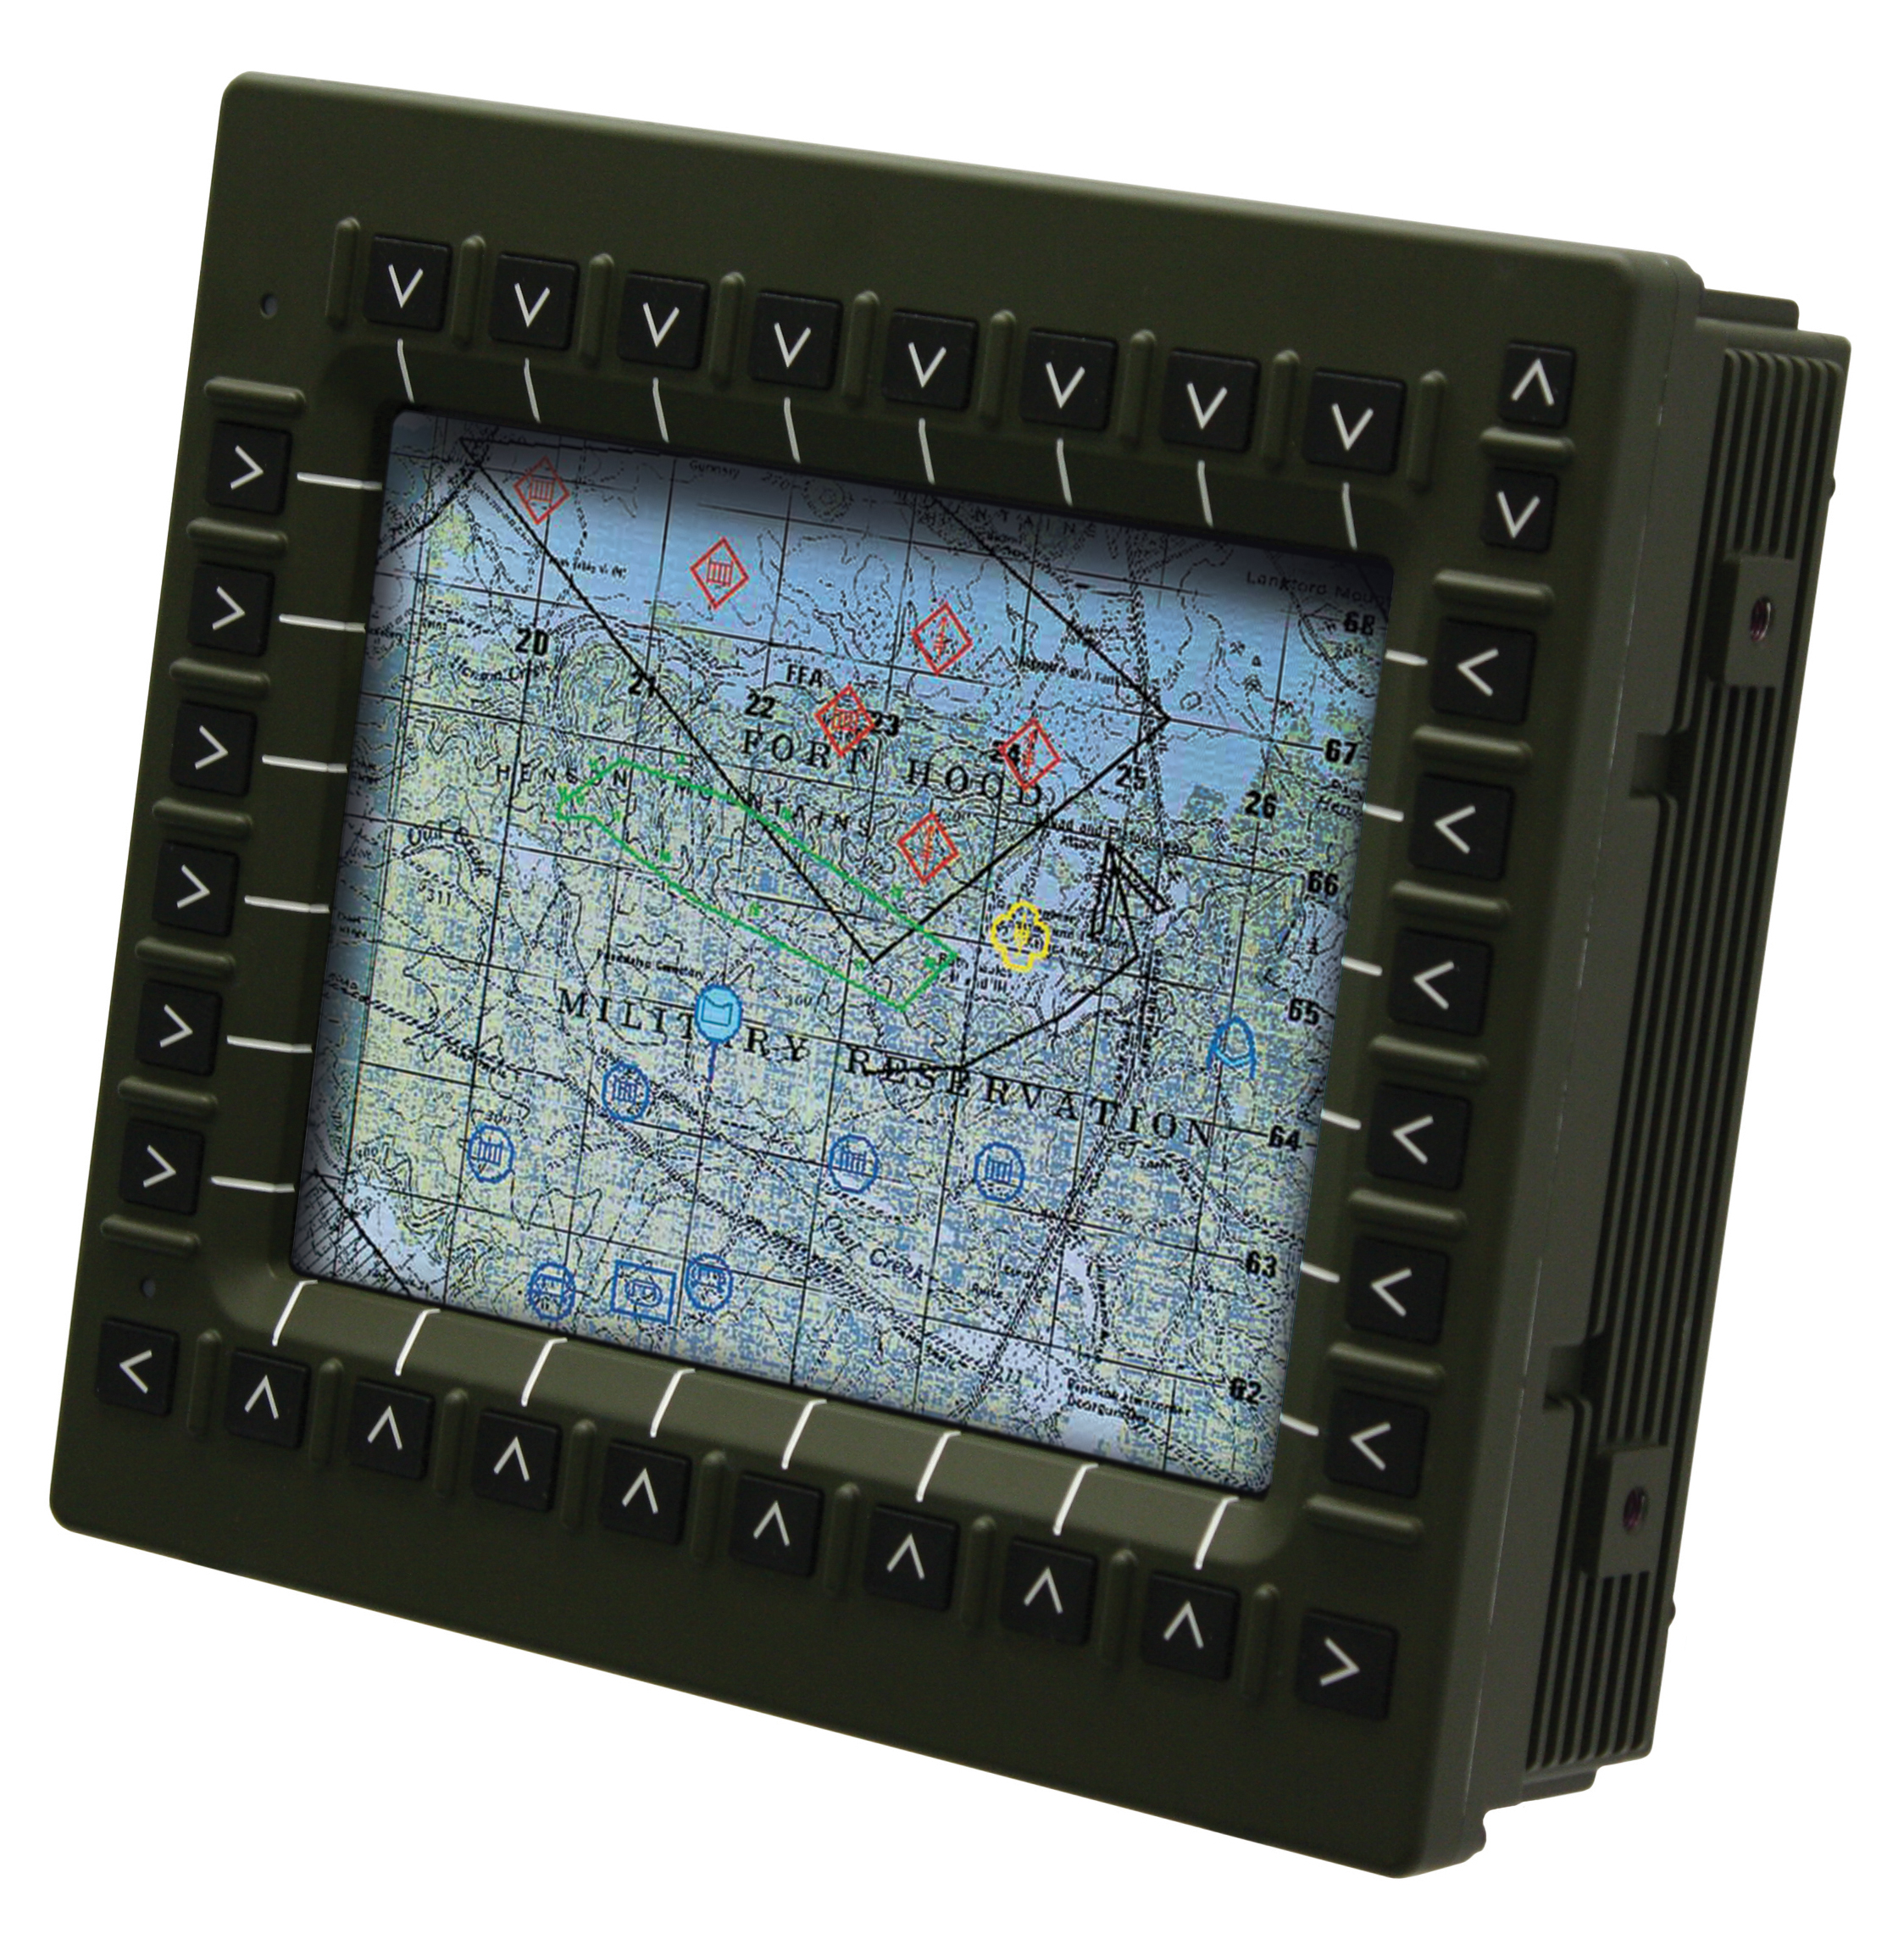 10.4 inch ground vehicle smart display